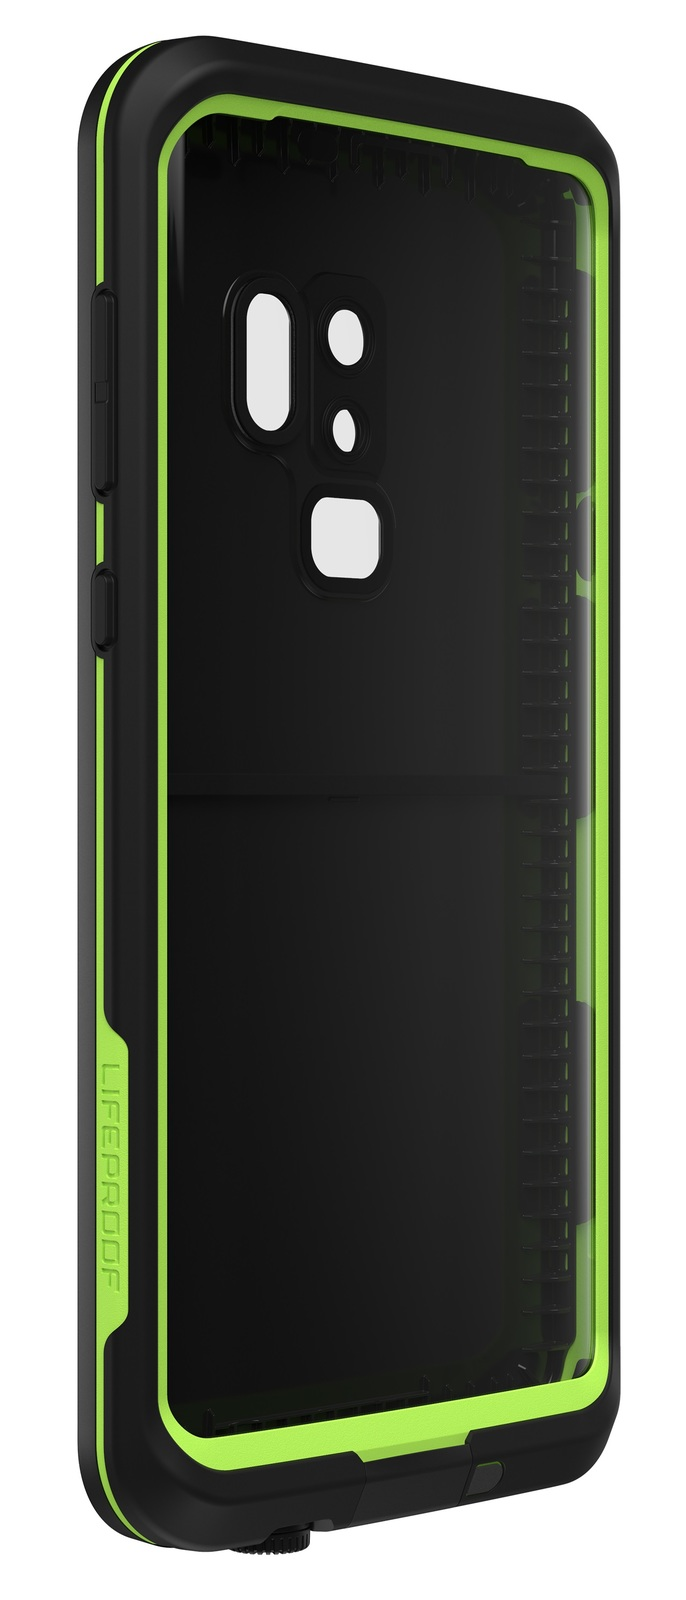 Lifeproof Fre Case Samsung Gs9 At Mighty Ape Nz Galaxy S6 For Black Lime Image